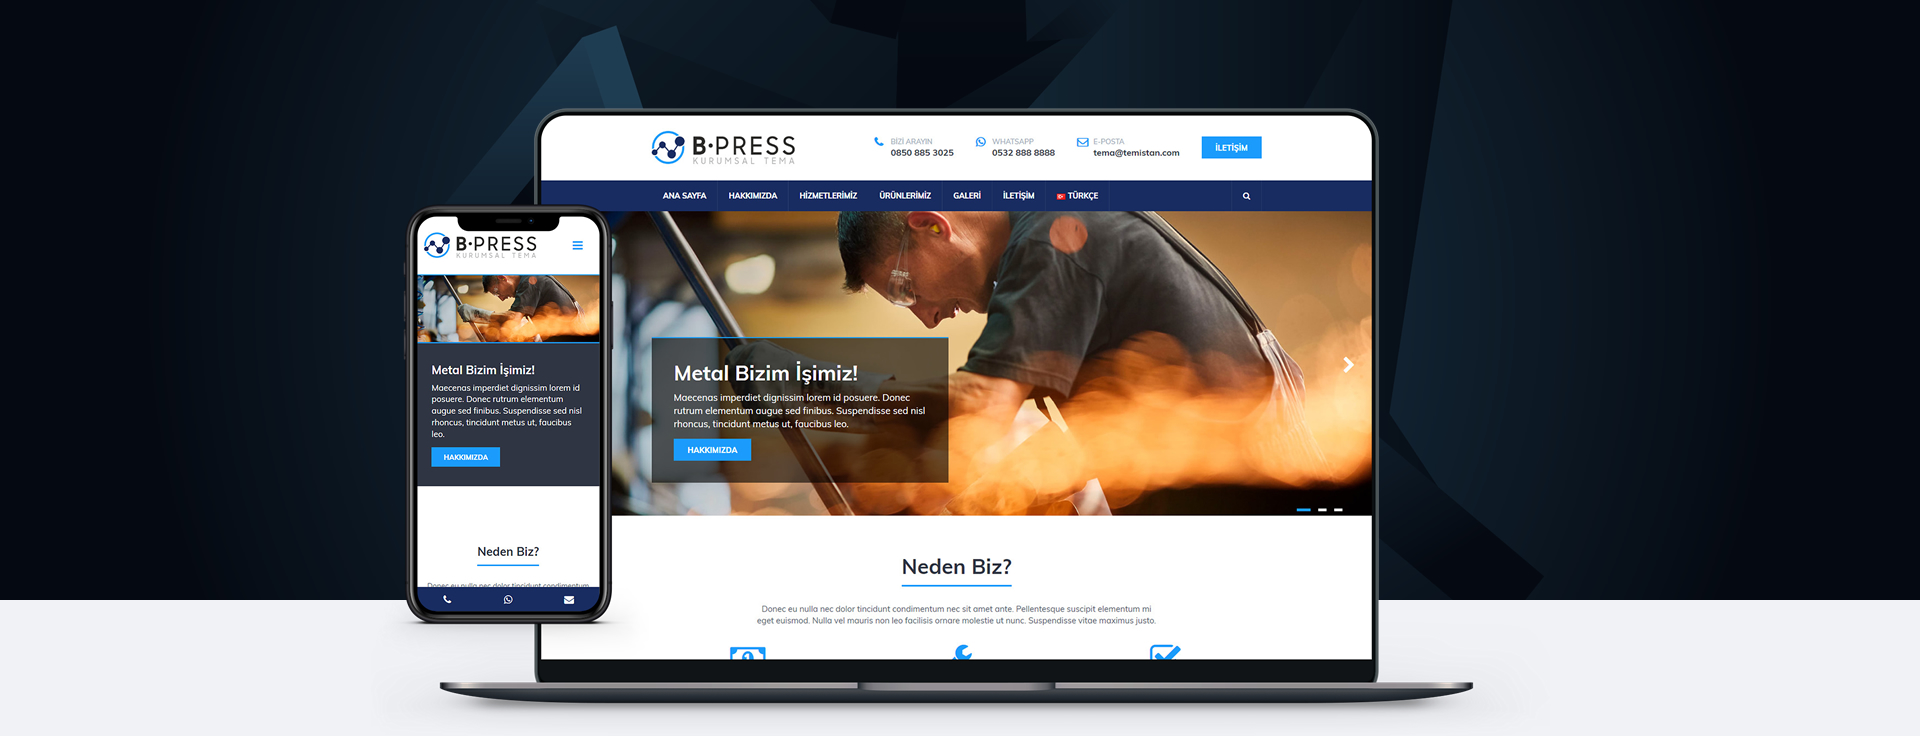 B-PRESS Wordpress Teması